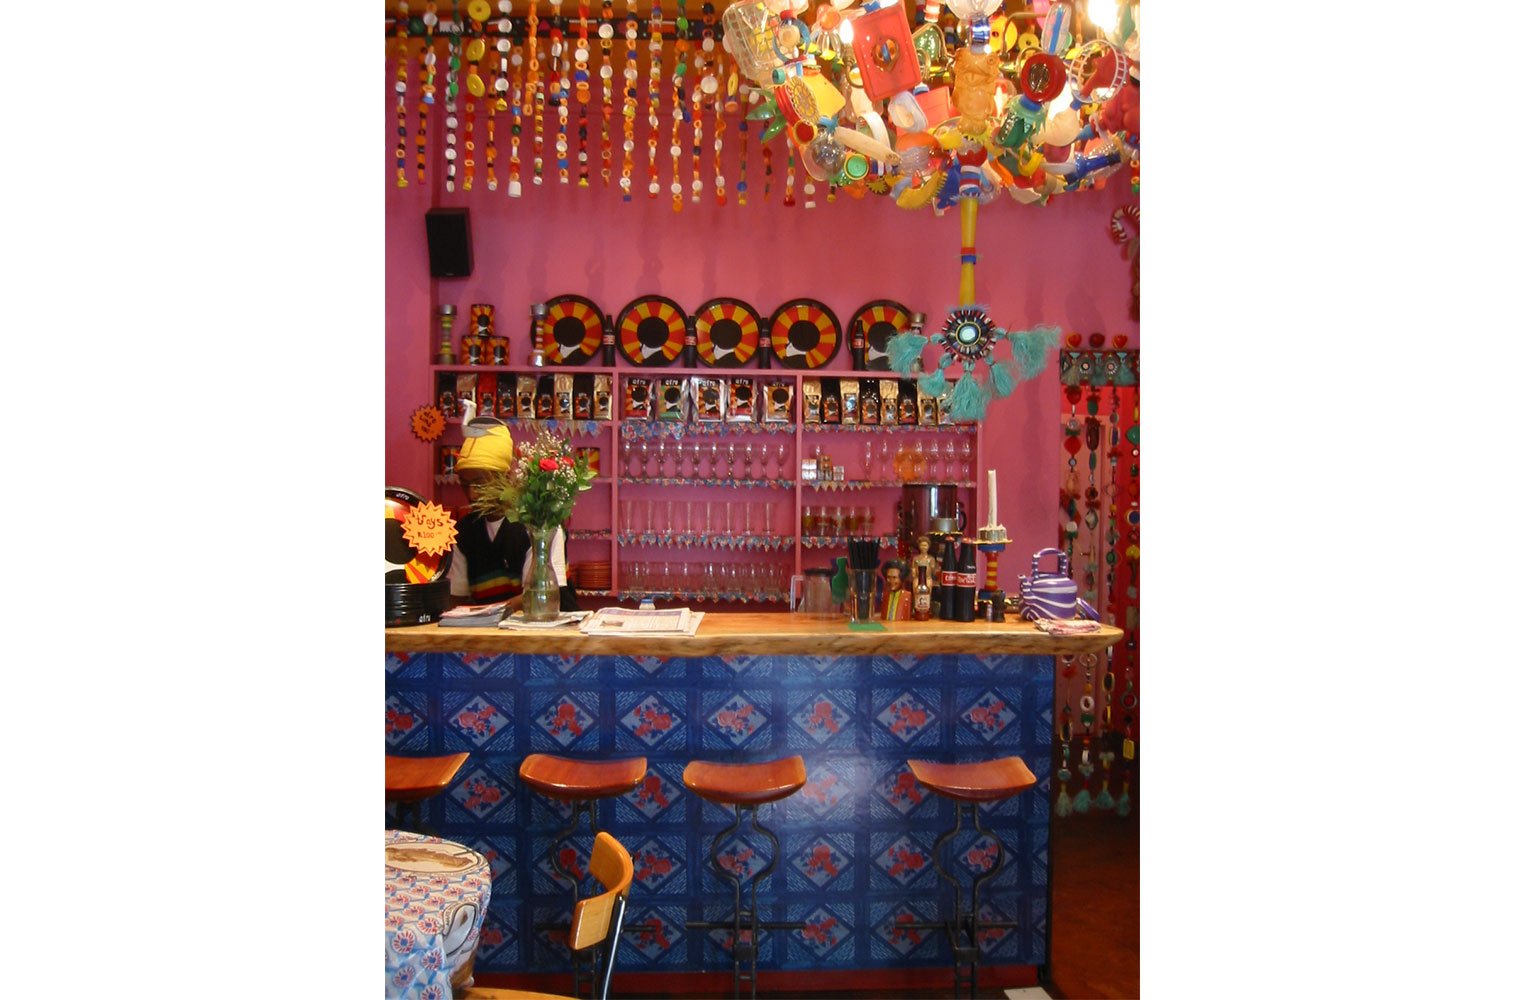 Afro Coffee Cafe - Church Street, Cape Town